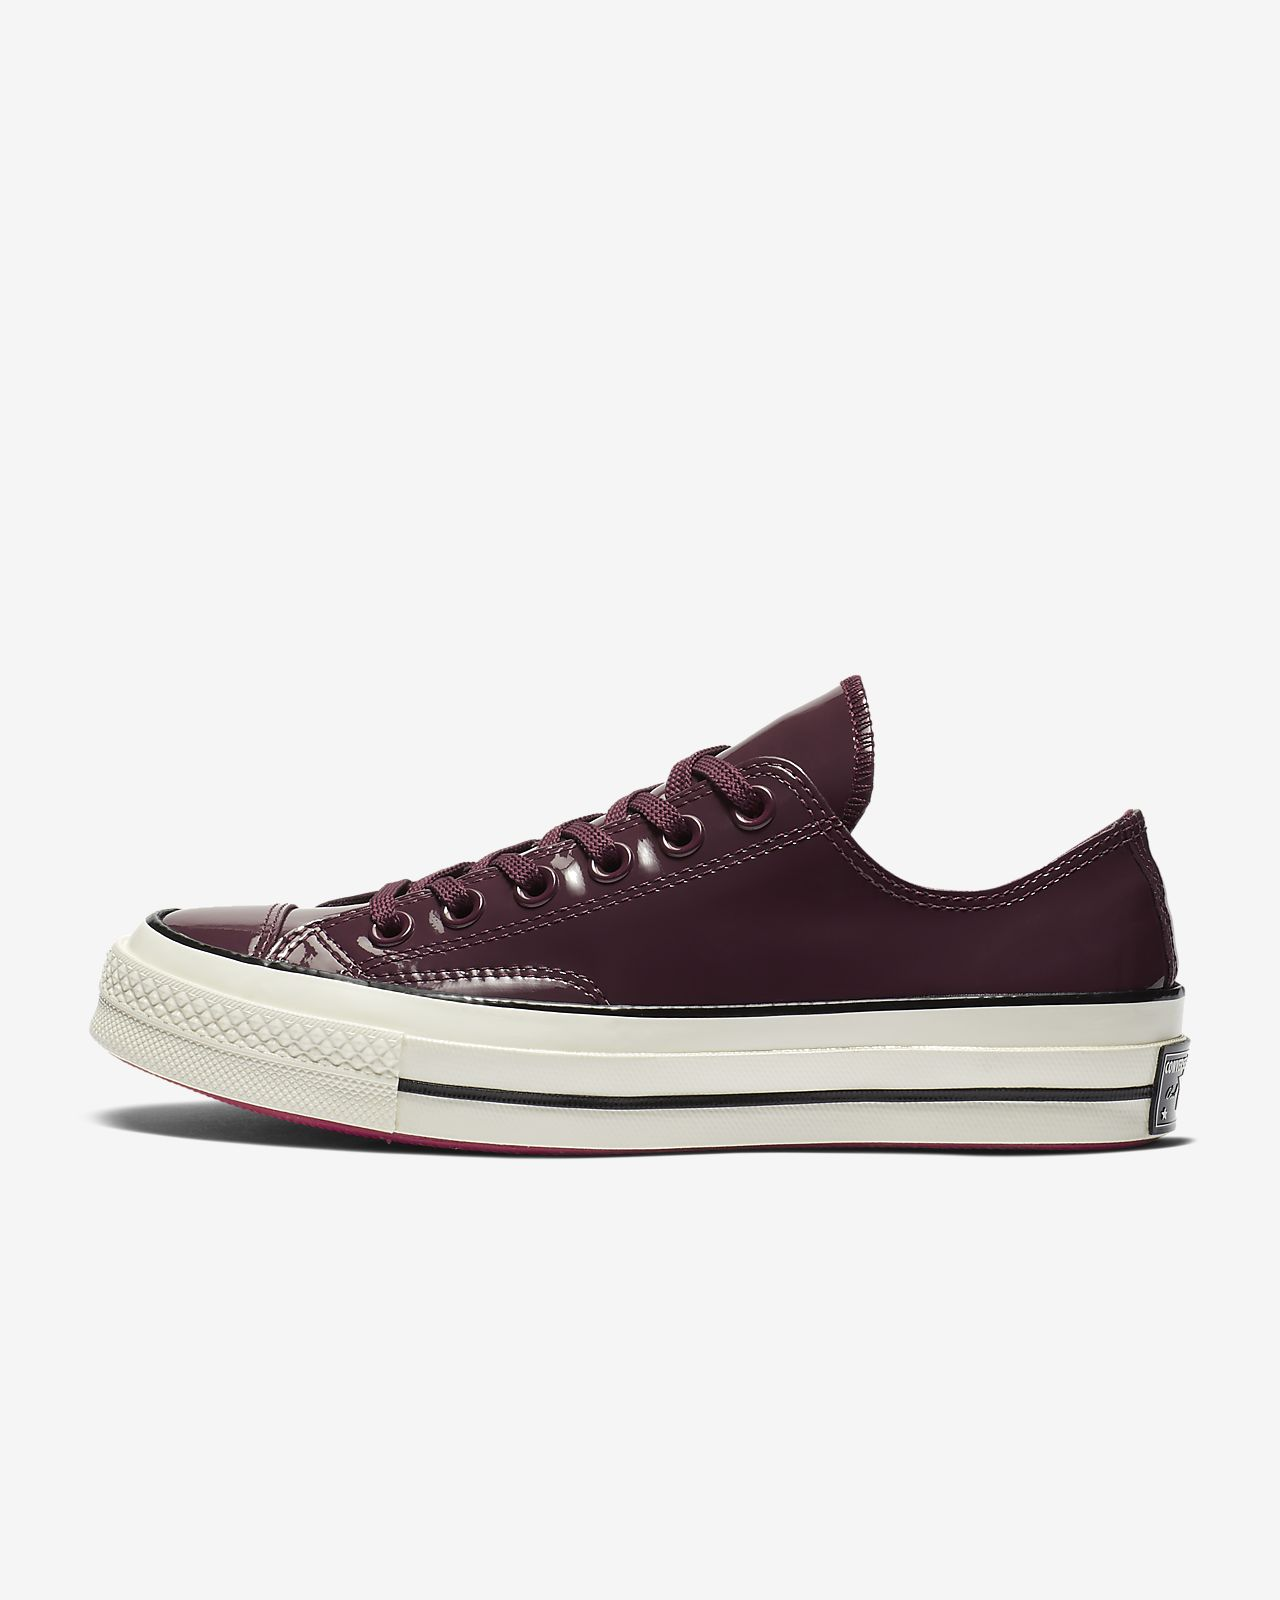 Converse Chuck 70 Patented 90's Leather Low Top Women's Shoe